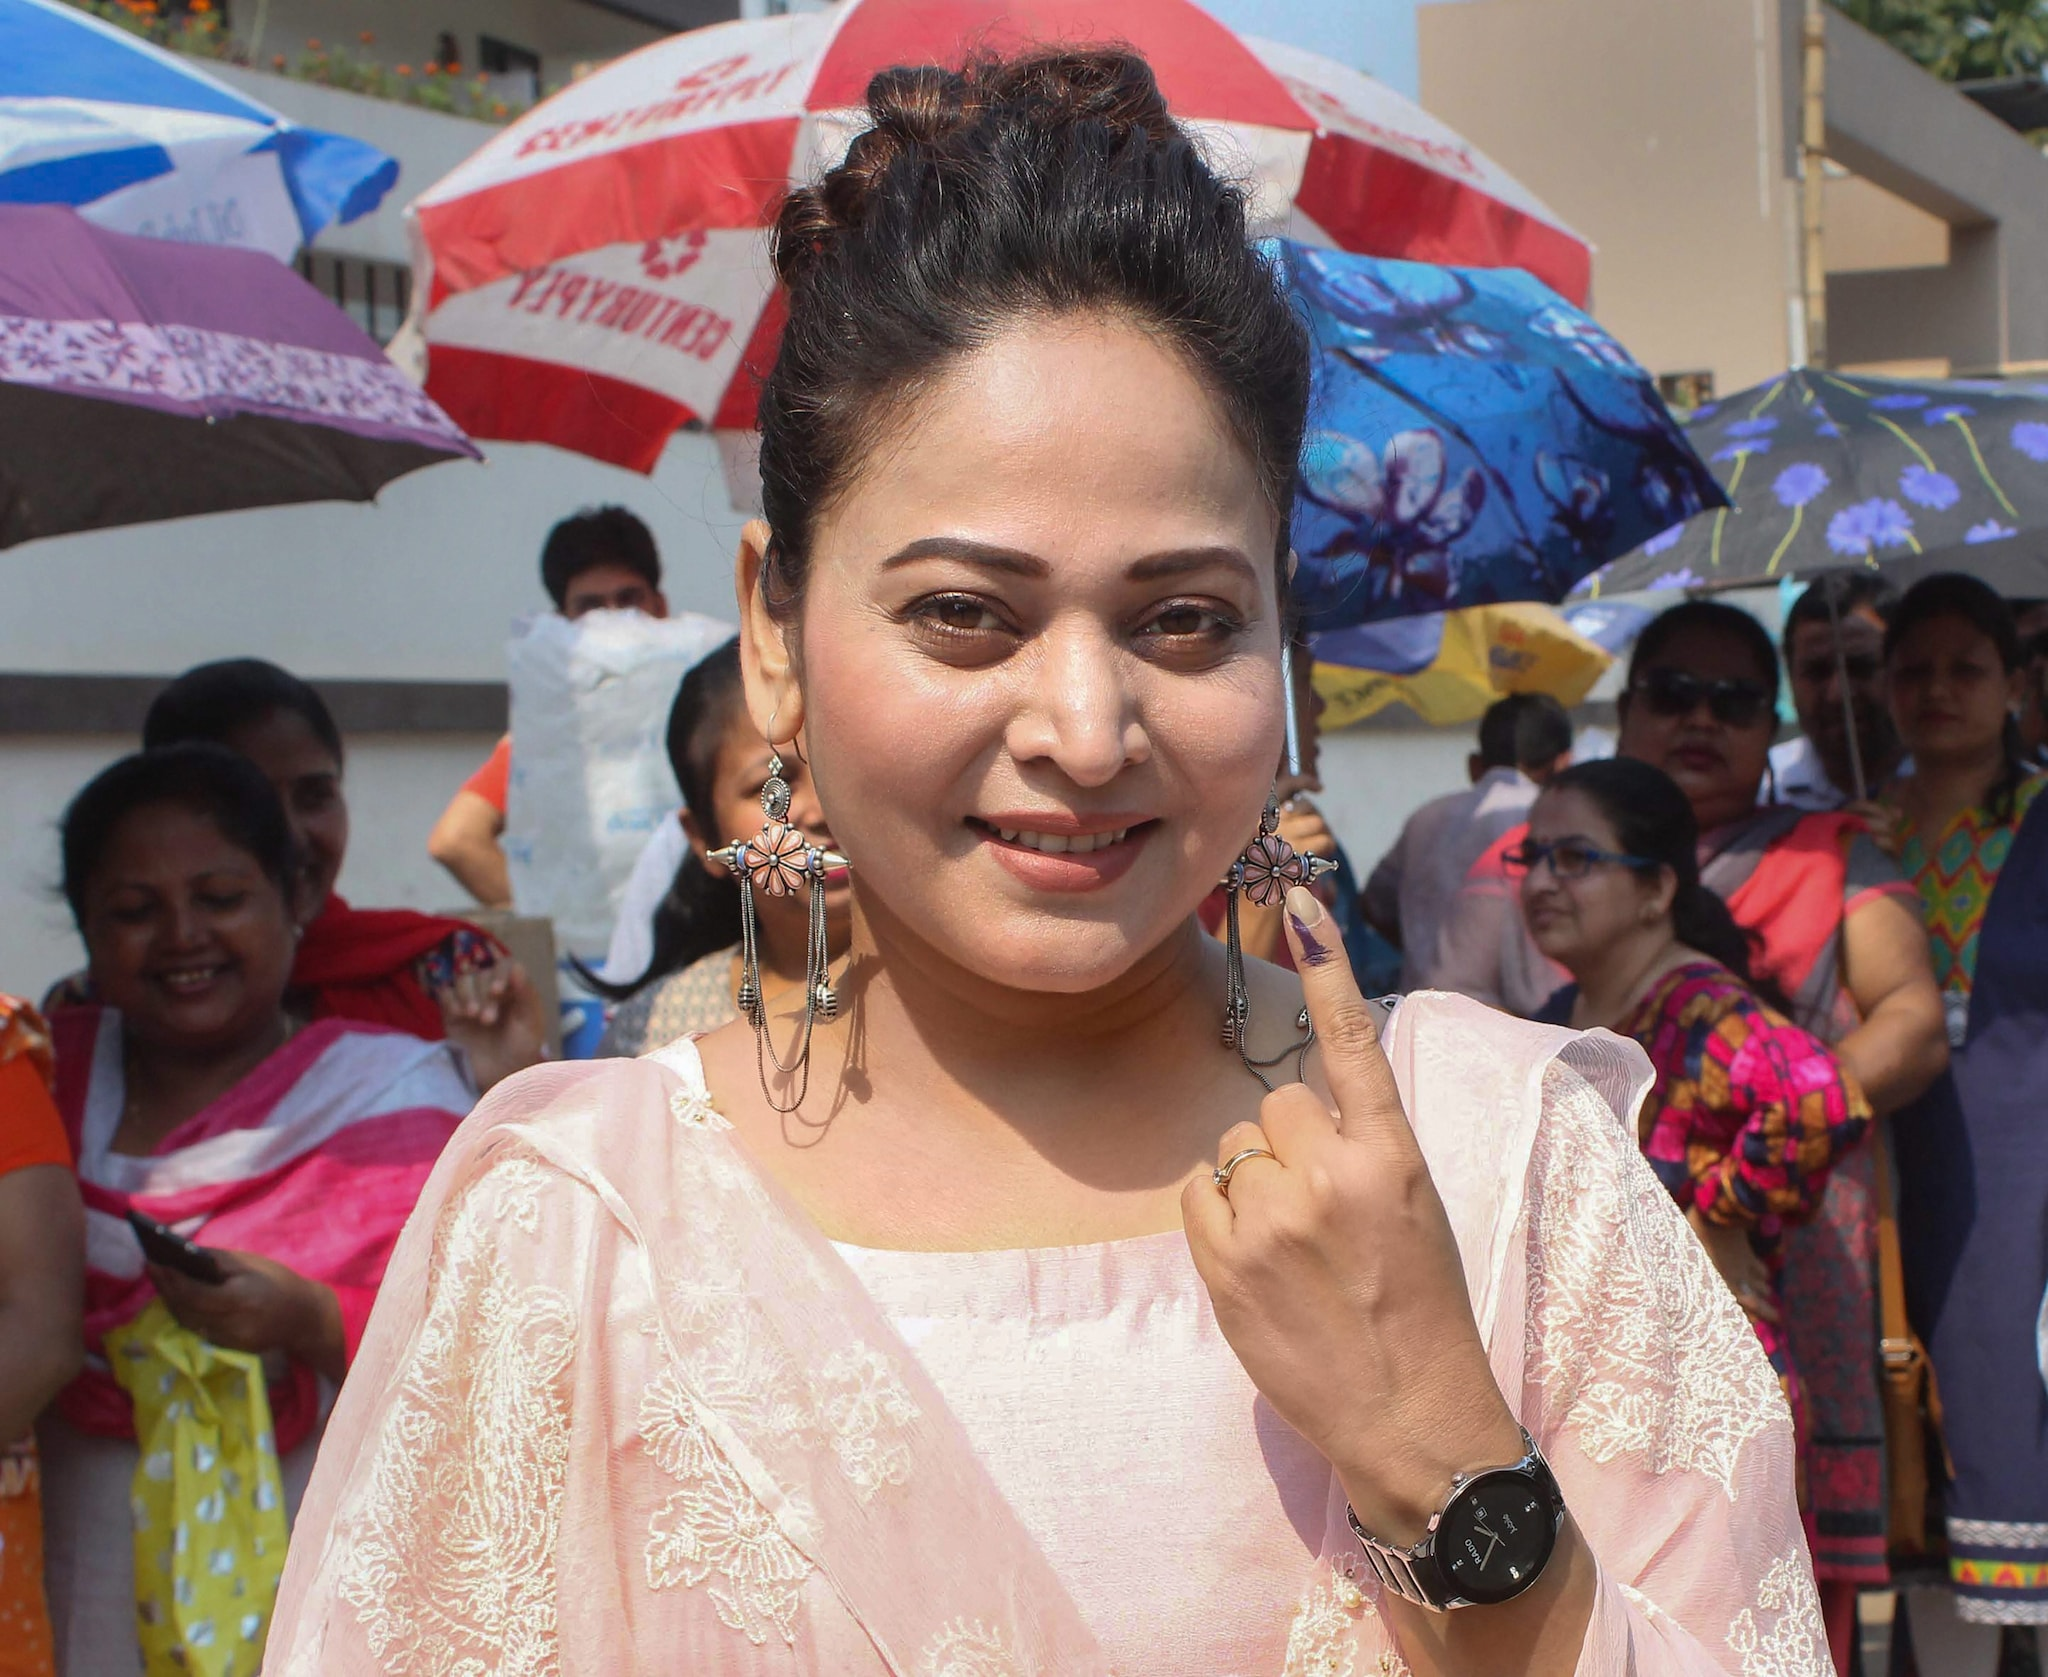 Assamese actress Zerifa Wahid shows her inked finger after casting vote at a polling station, during the 3rd phase of the Lok Sabha polls, in Guwahati, Tuesday, April 23, 2019. (PTI Photo)